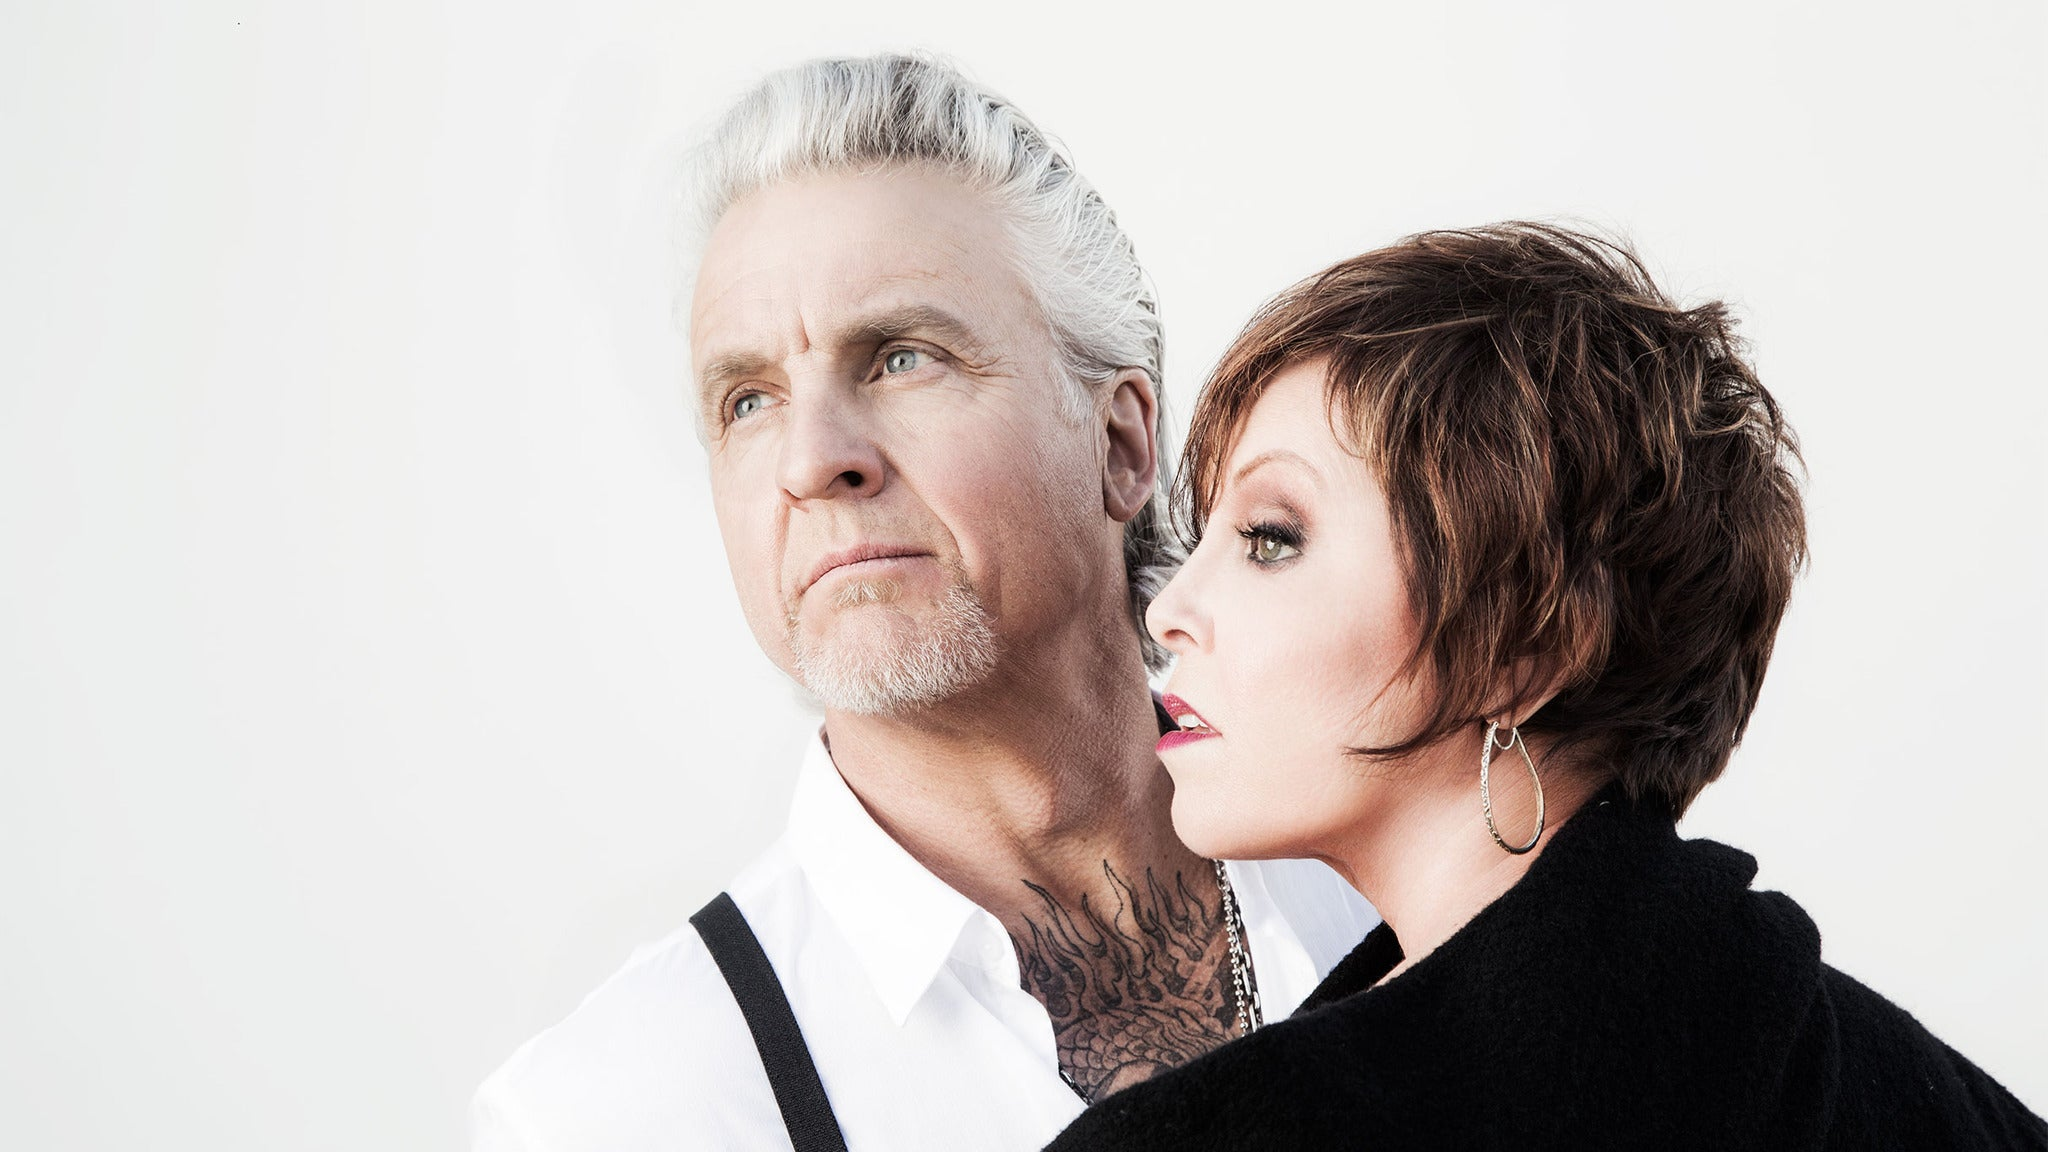 Pat Benatar & Neil Giraldo at The Saban